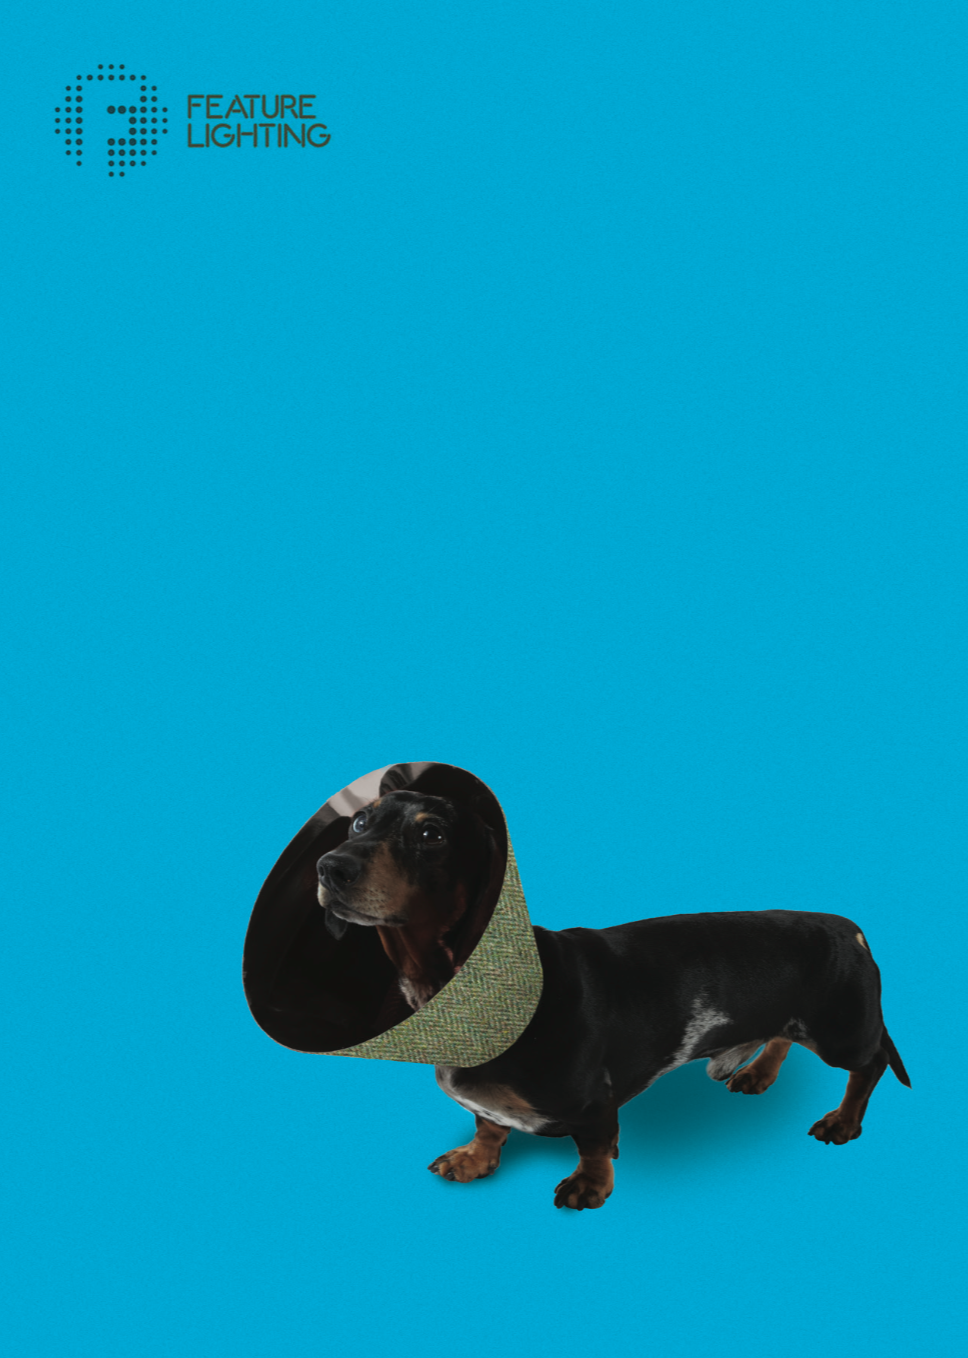 STANLEY - Our little Dachshund chum Stanley always cuts a dash. He configured a herringbone tweed shade. He's always quite fancied a flat cap.